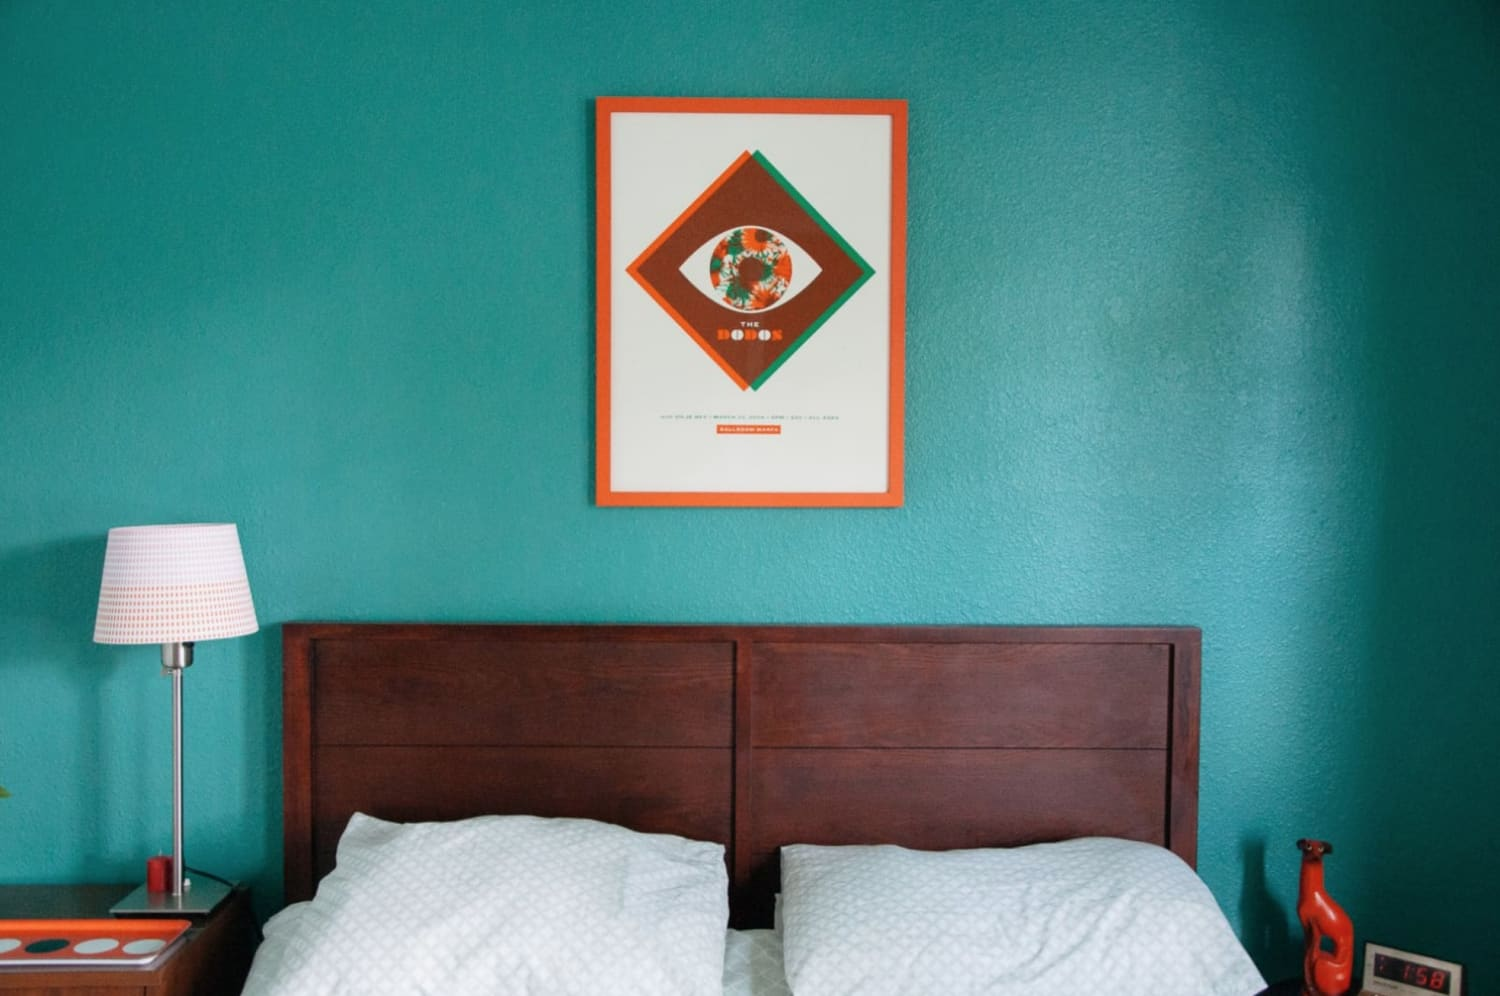 4 Colors You Should Never Paint Your Bedroom, According to Color Experts